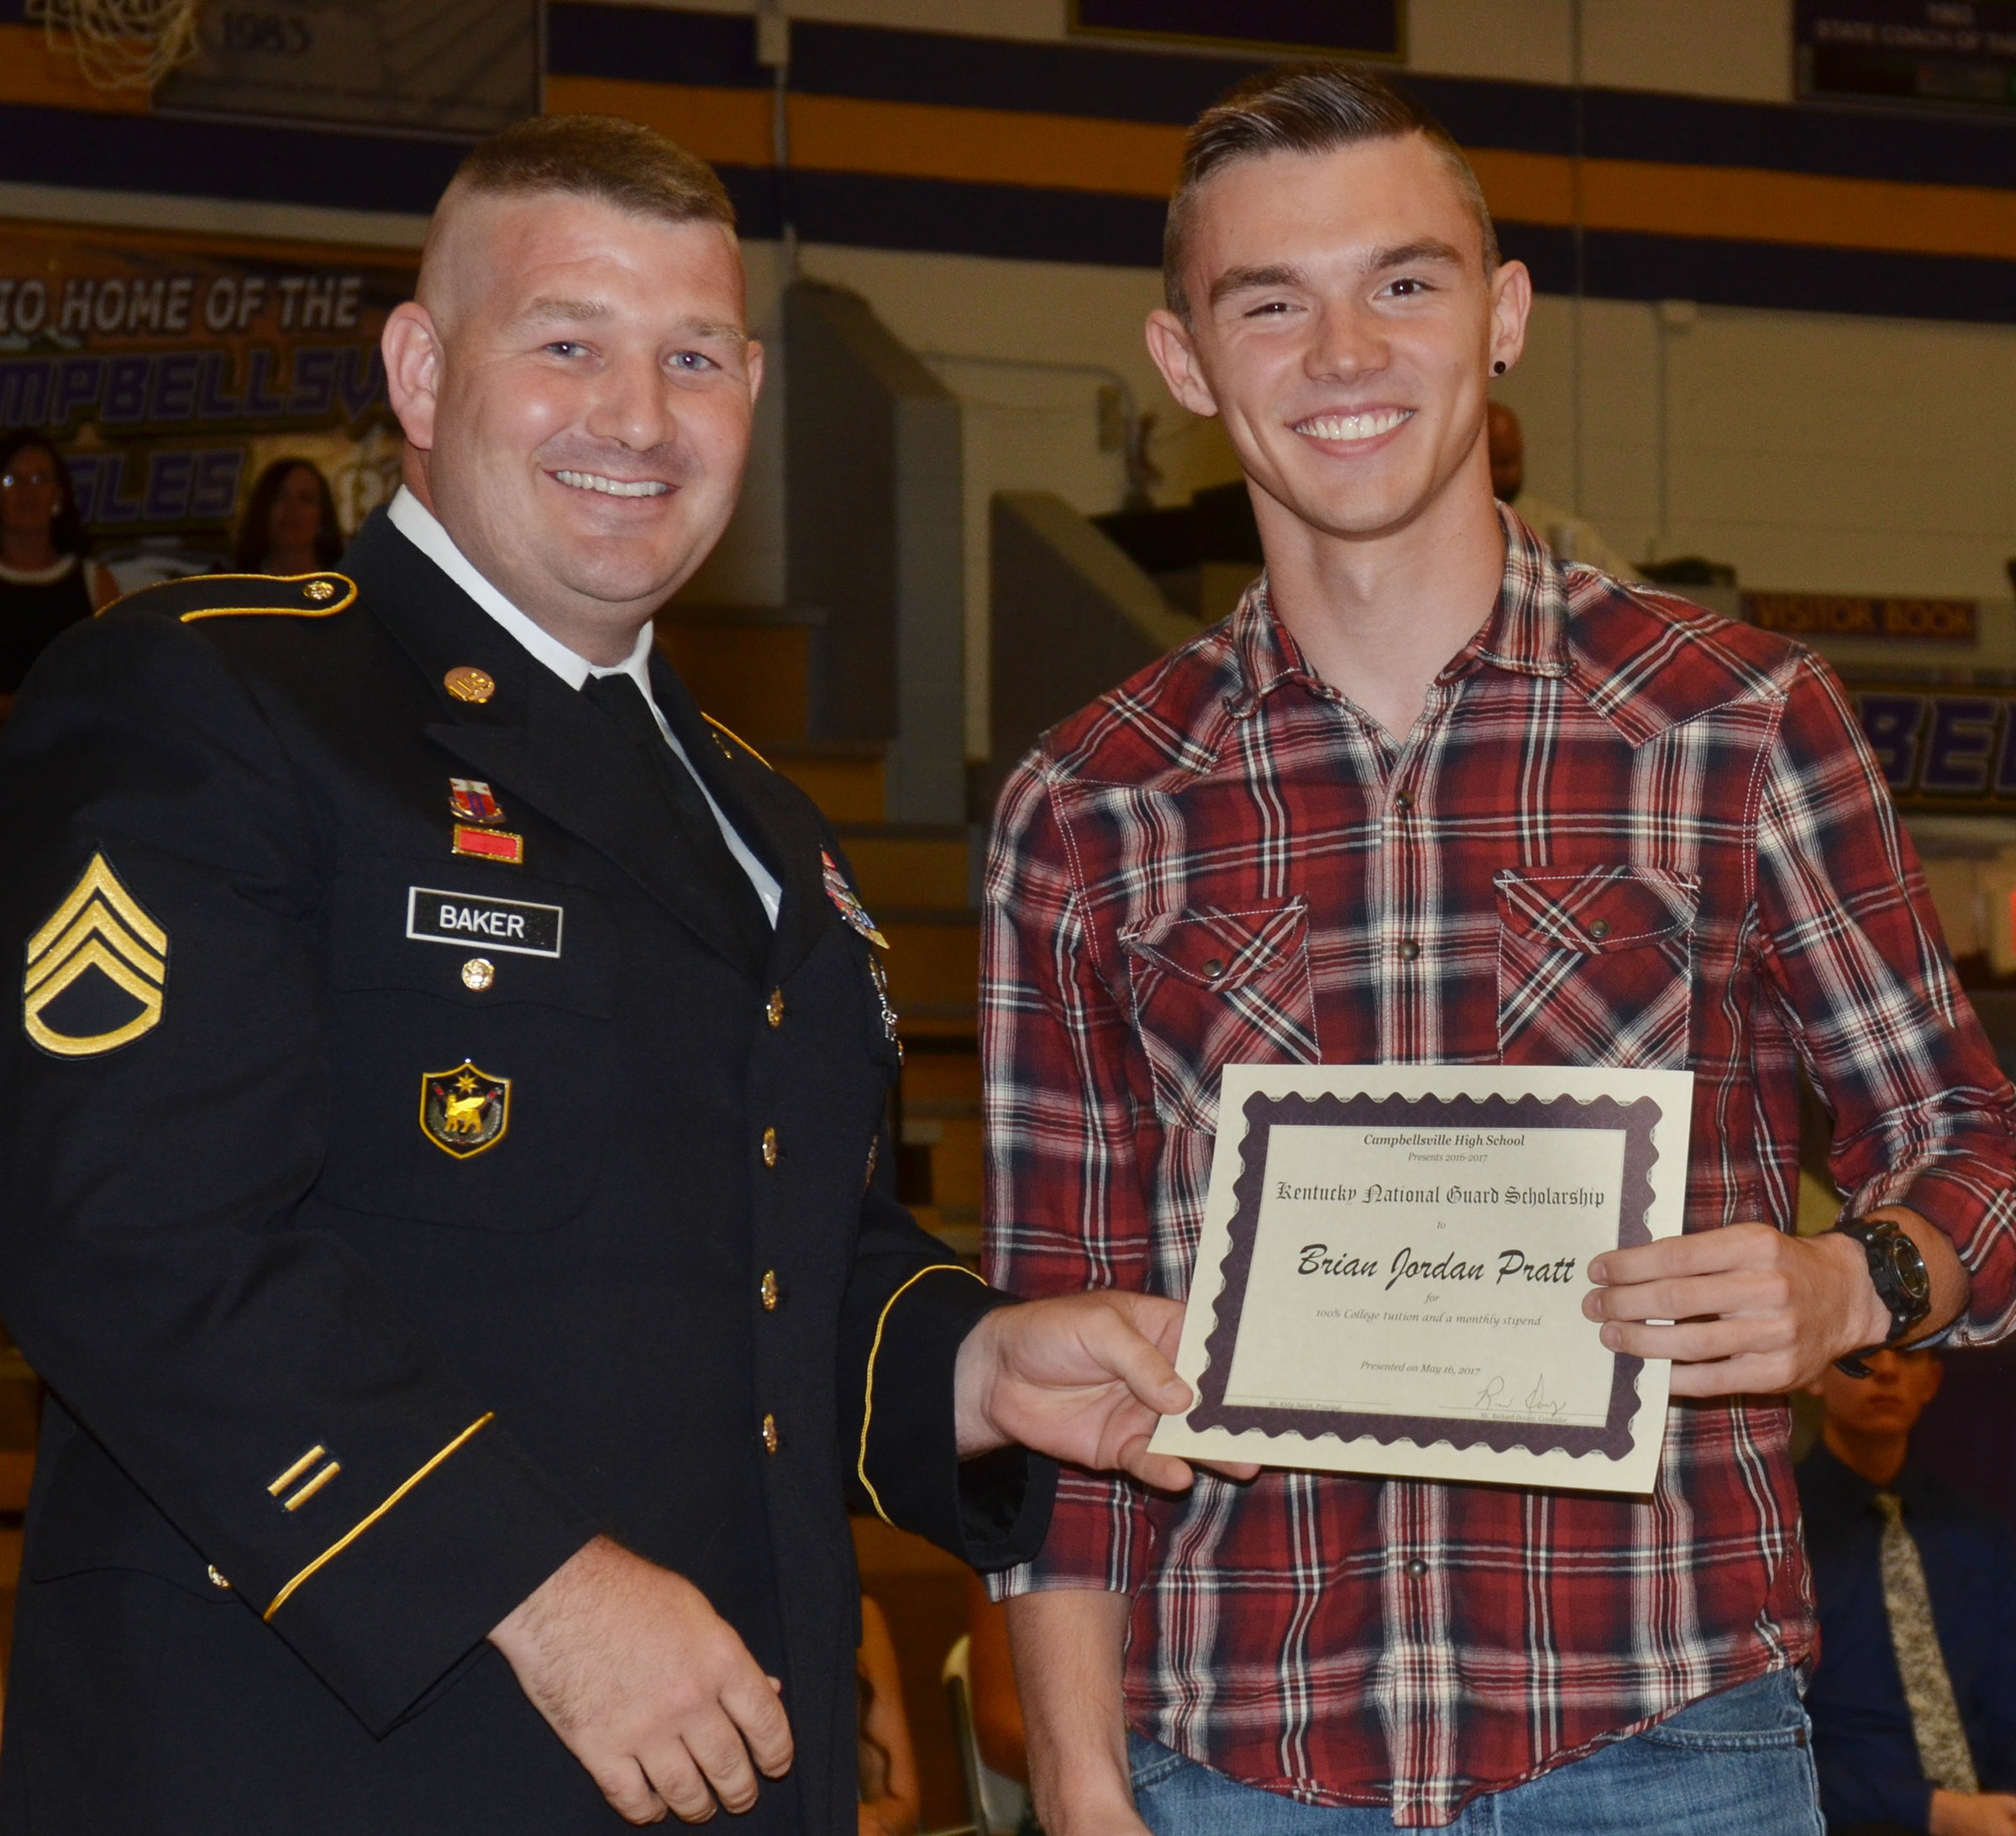 Jordan Pratt receives recognition from Sgt. Phillip Baker of the National Guard.